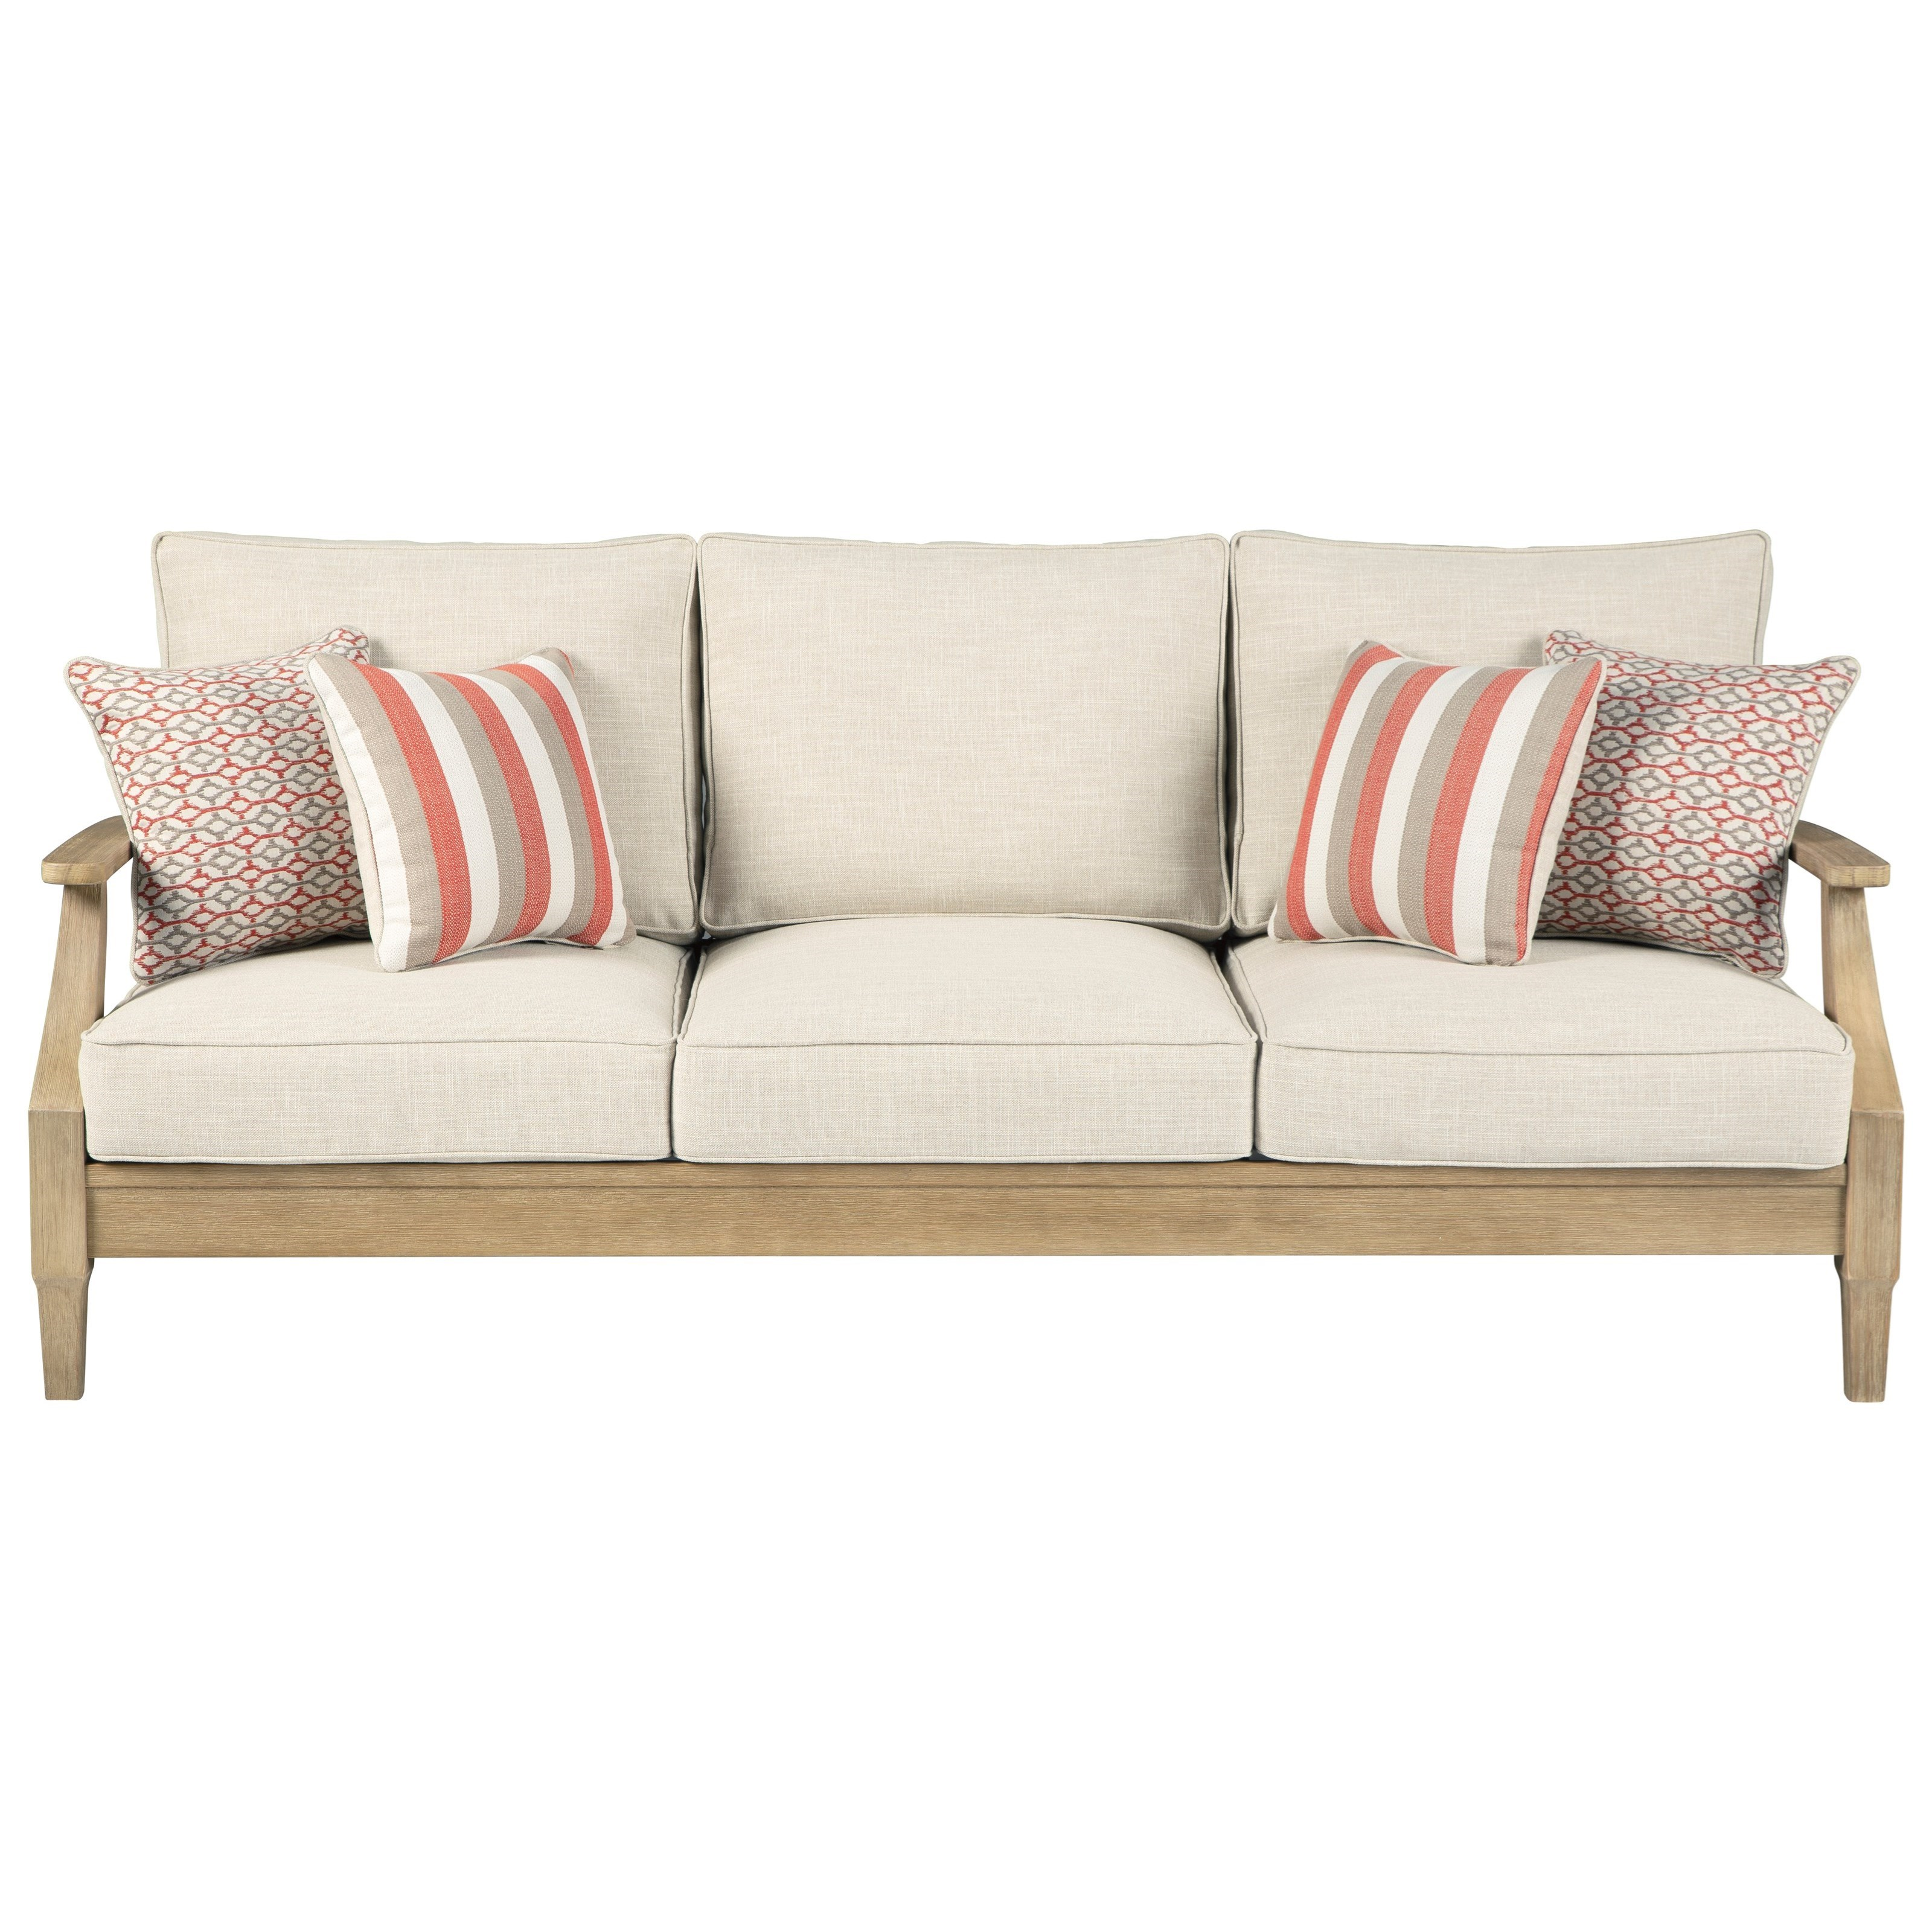 Clare View Sofa with Cushion by Signature at Walker's Furniture